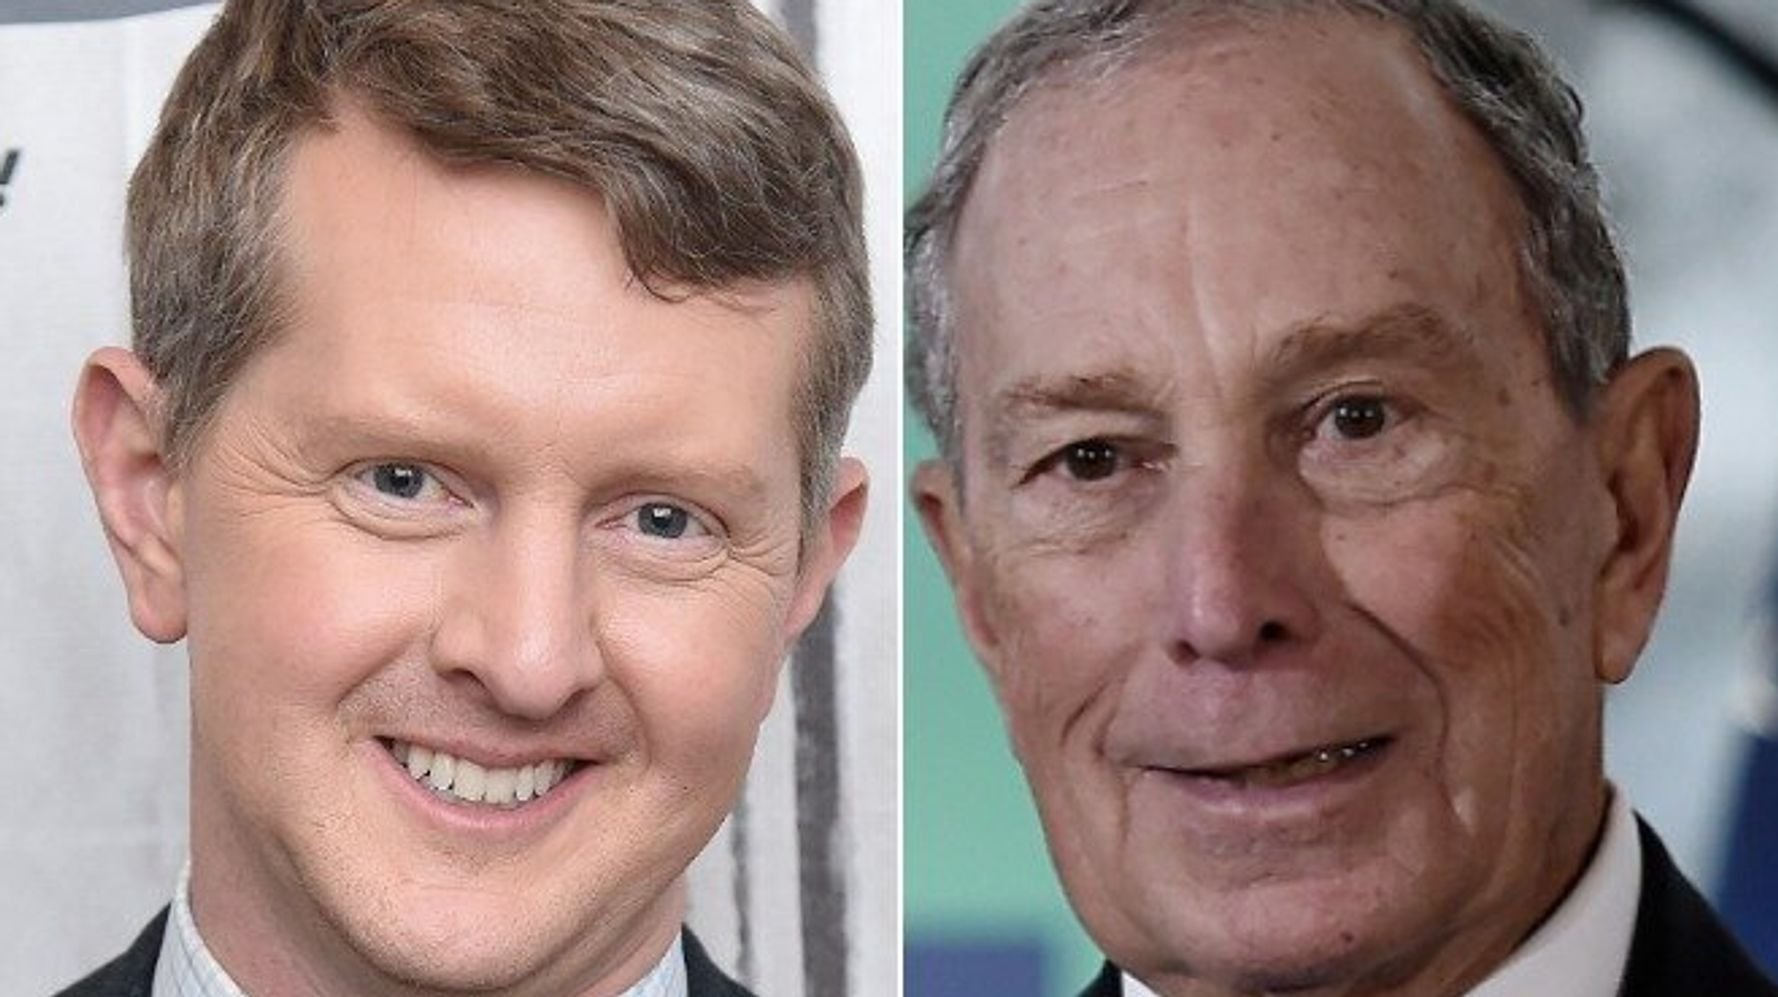 Westlake Legal Group 5e1ece1a24000052006c3ca3 What Is A Savage Burn? Mike Bloomberg Torched By 'Jeopardy' Great Ken Jennings